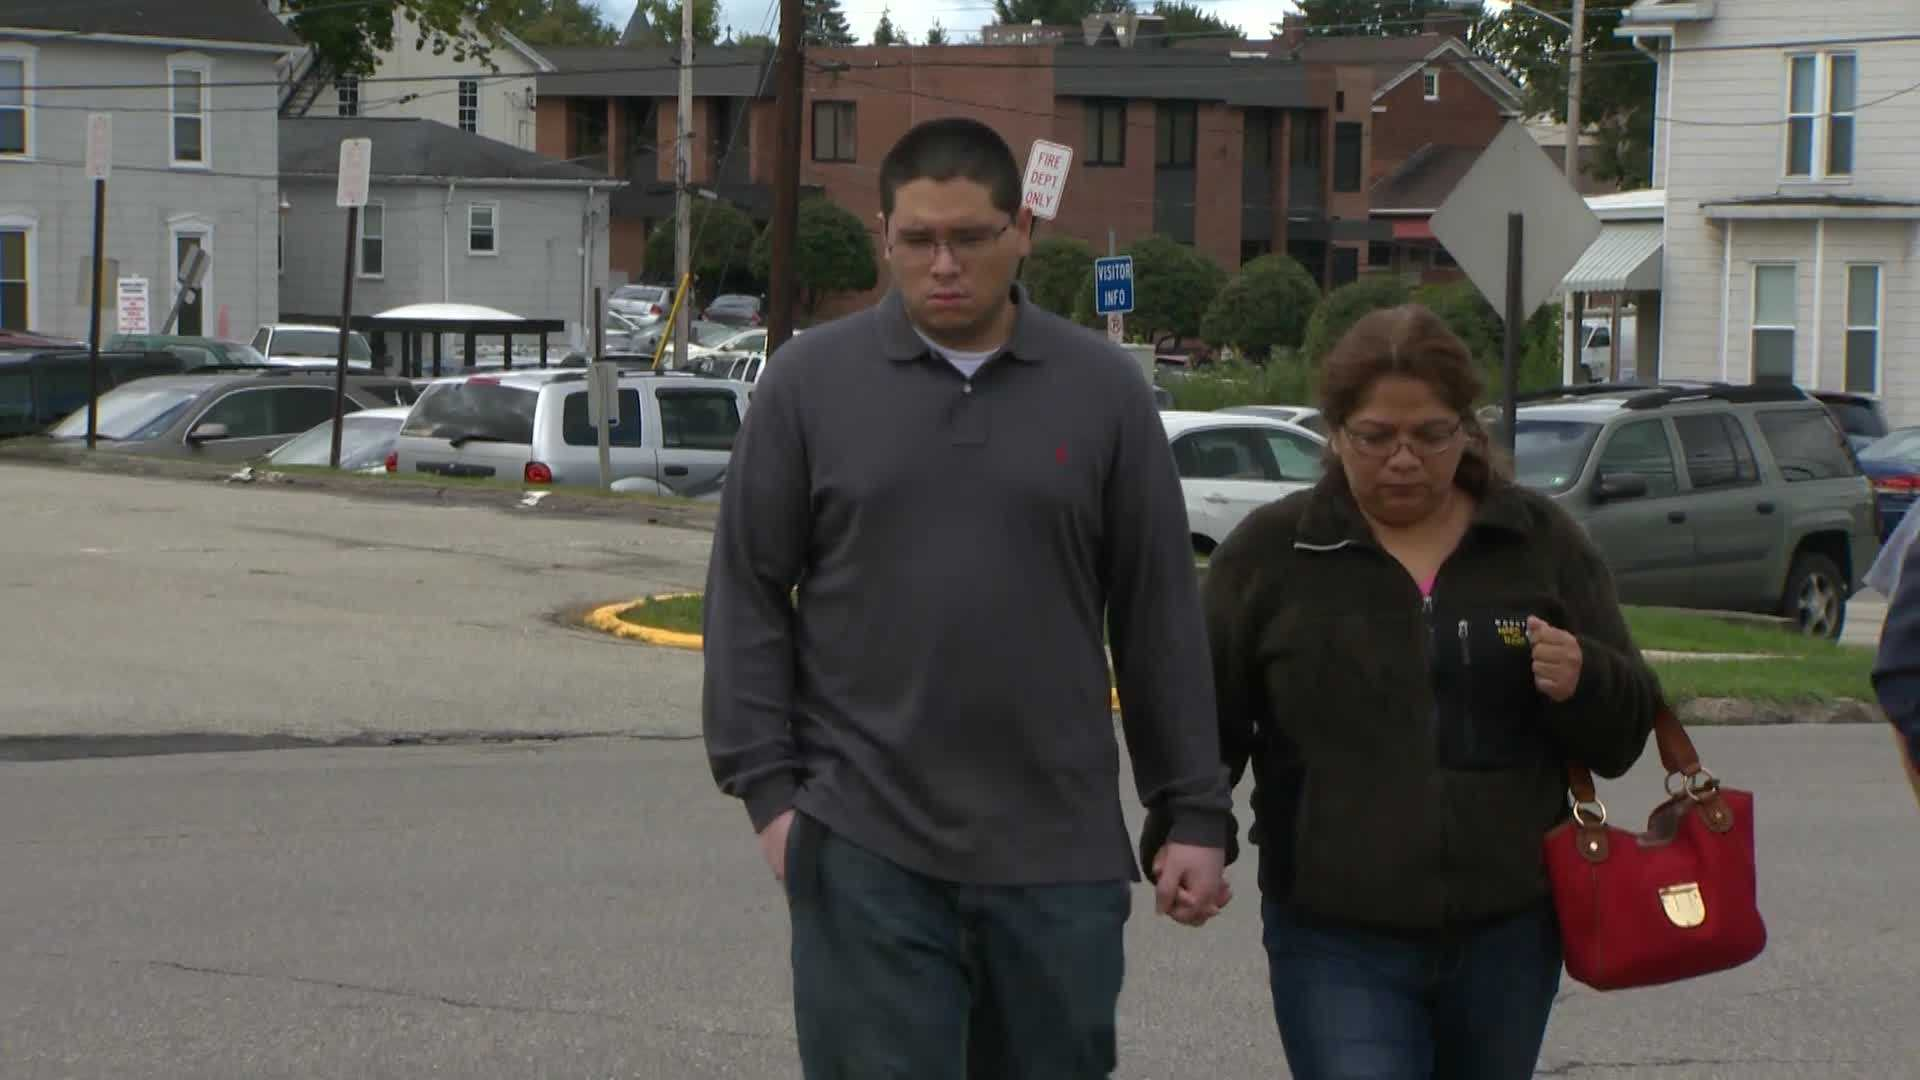 William Rivera was accompanied by his mother to the Indiana borough police station.